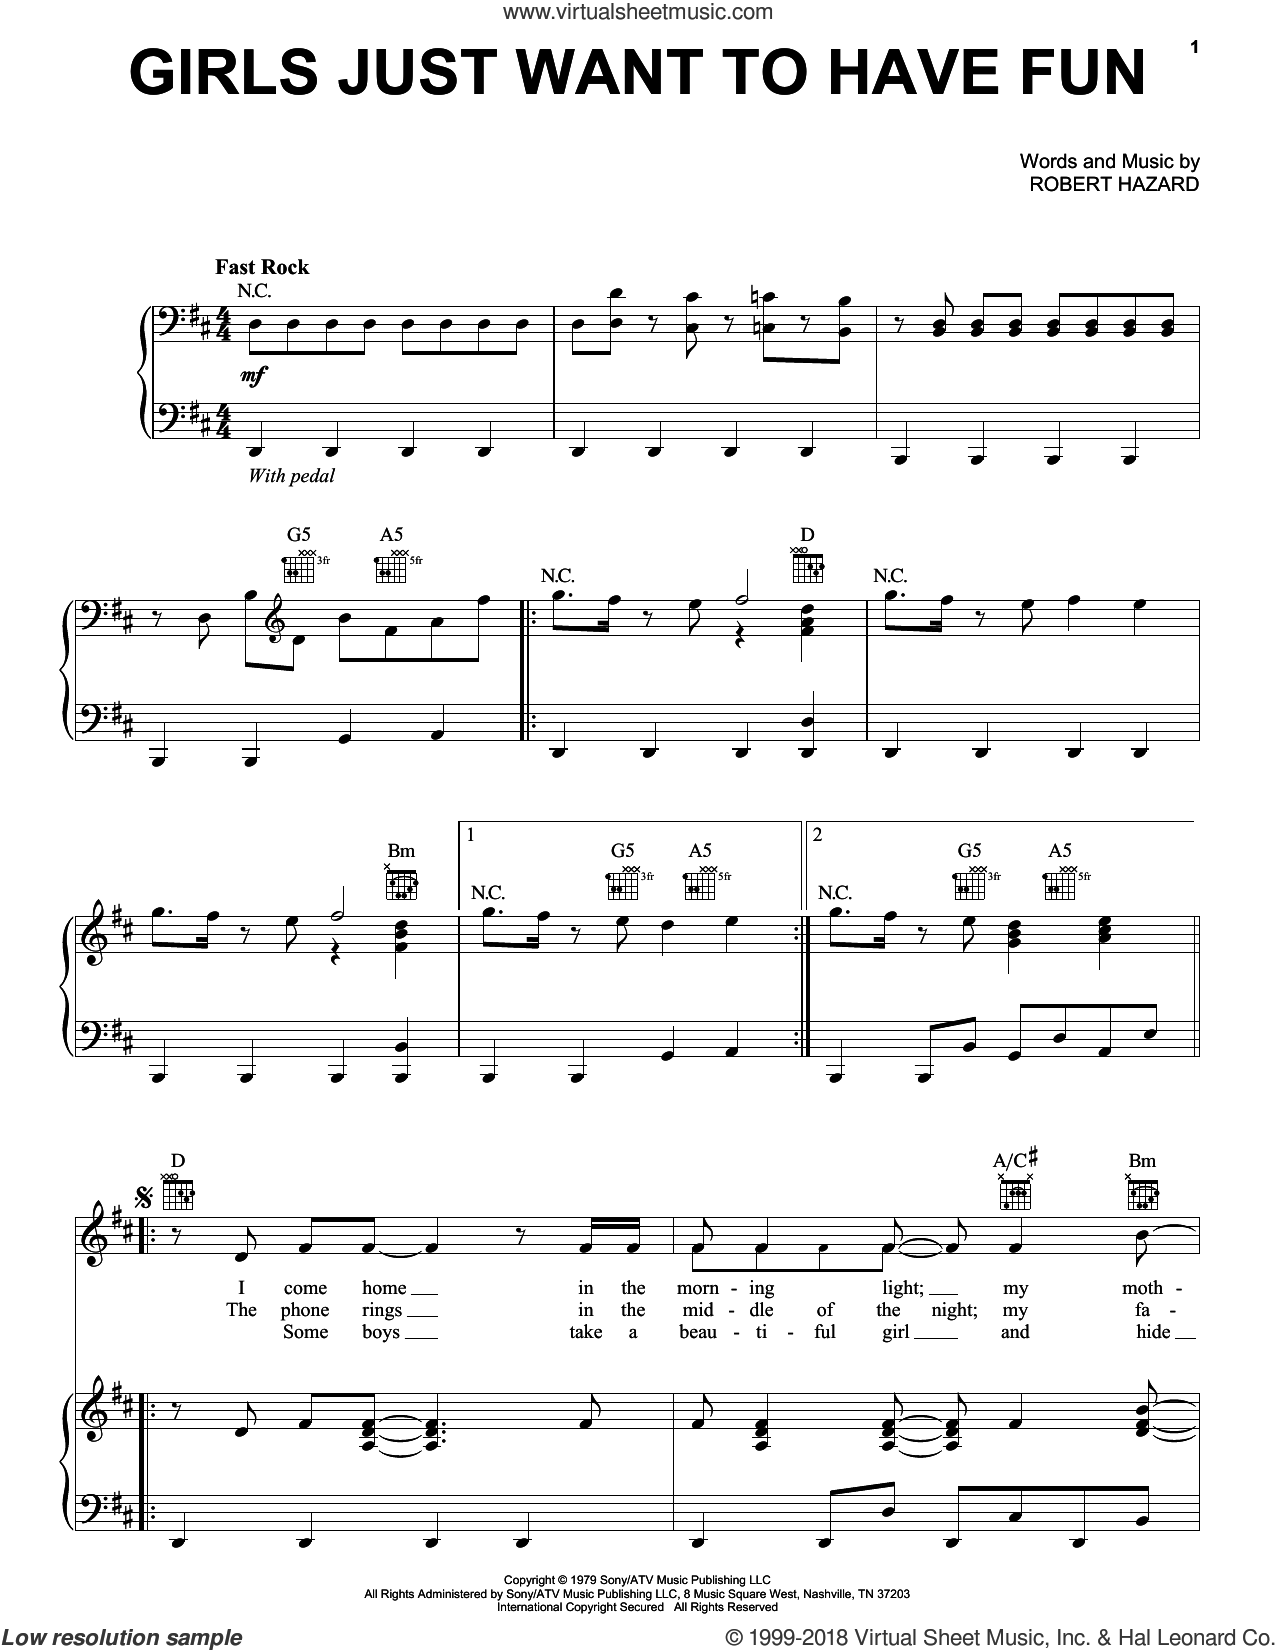 Girls Just Want To Have Fun sheet music for voice, piano or guitar by Robert Hazard